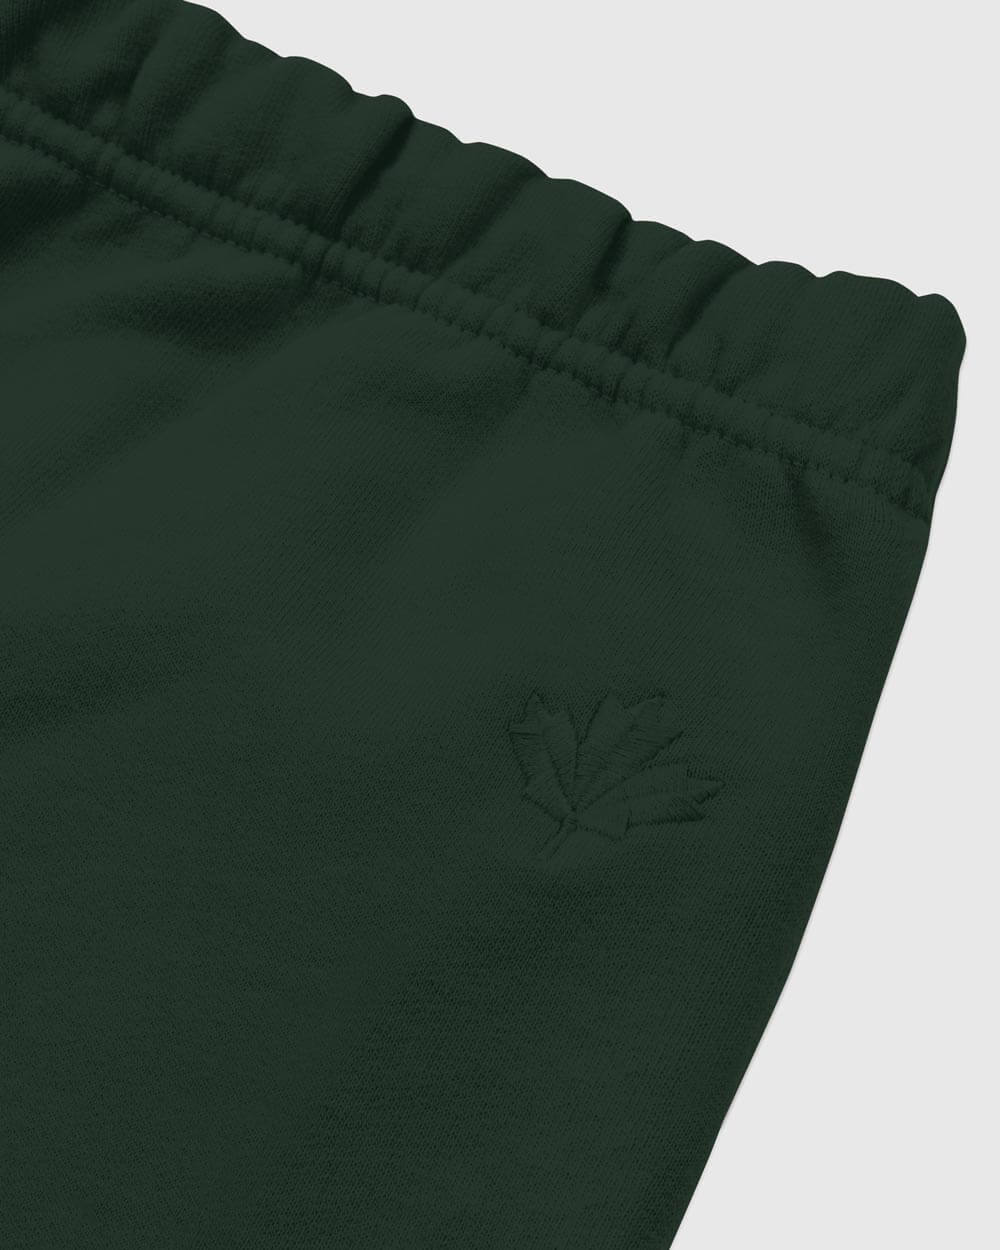 OVO x ROOTS SWEATPANT - PARK GREEN